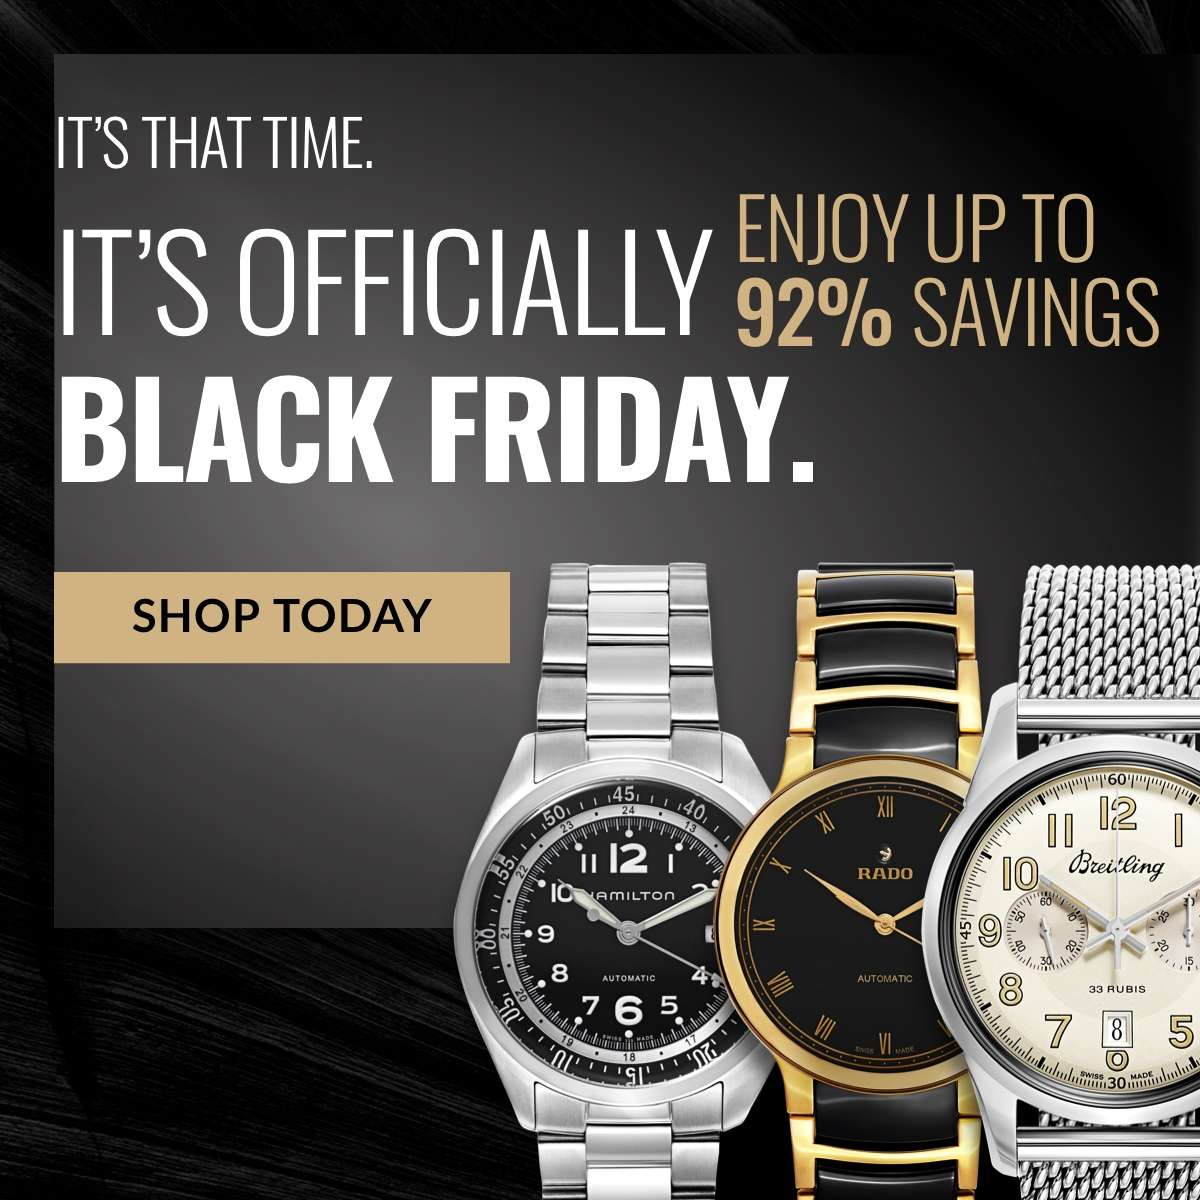 It's that time.  It's officially Black Friday.  Enjoy up to 92% savings.  SHOP TODAY